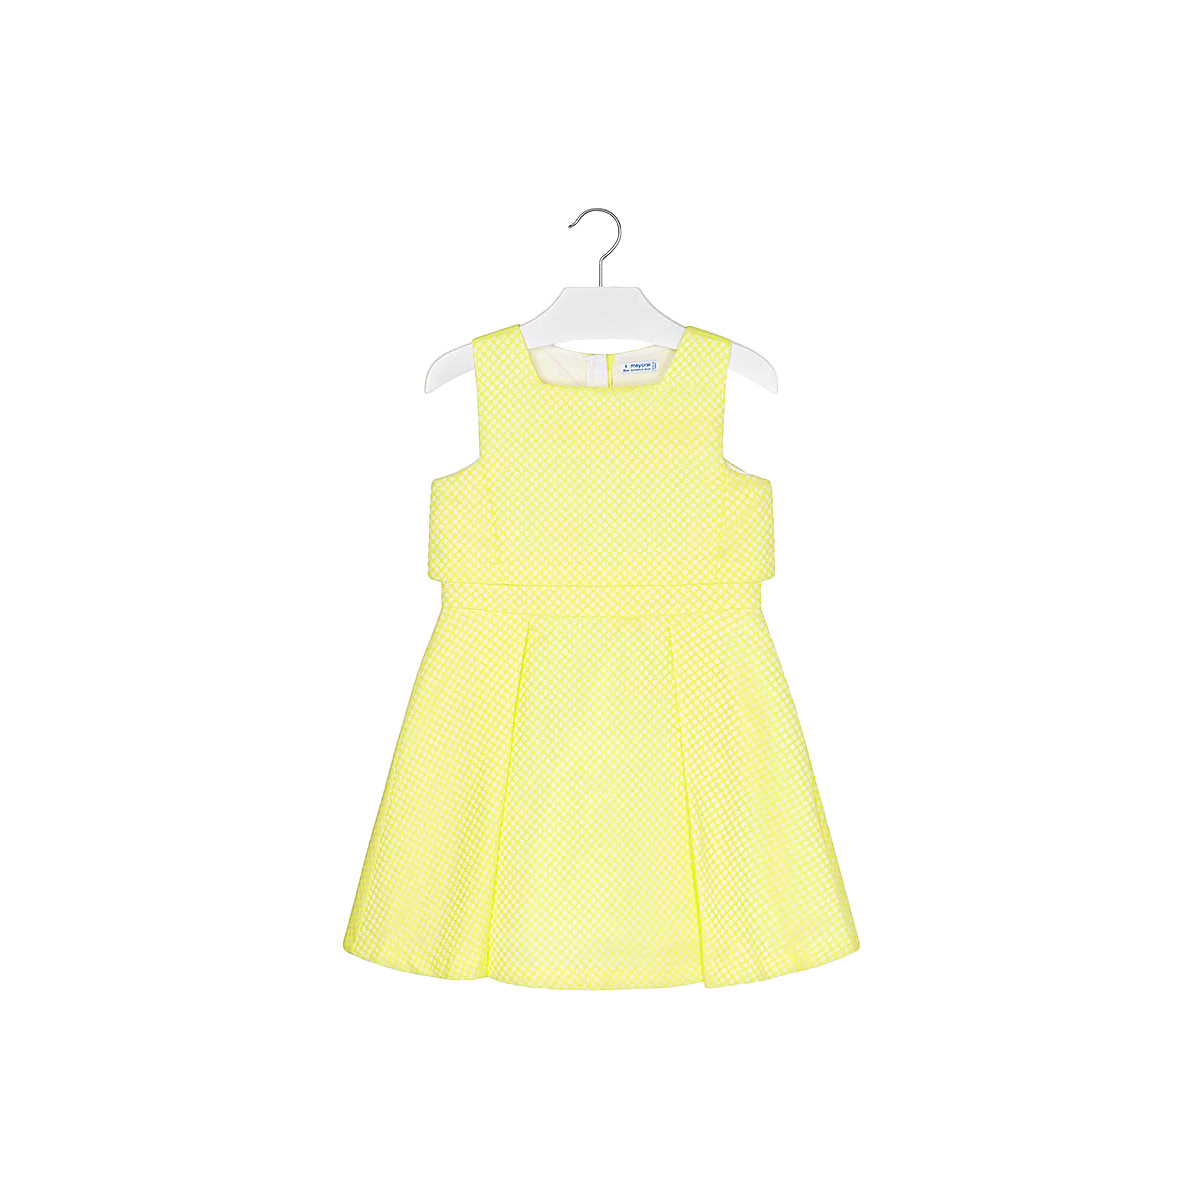 MAYORAL Dresses 10688925 Girl Children fitted pleated skirt Yellow Polyester Casual Solid Knee-Length Sleeveless Sleeve